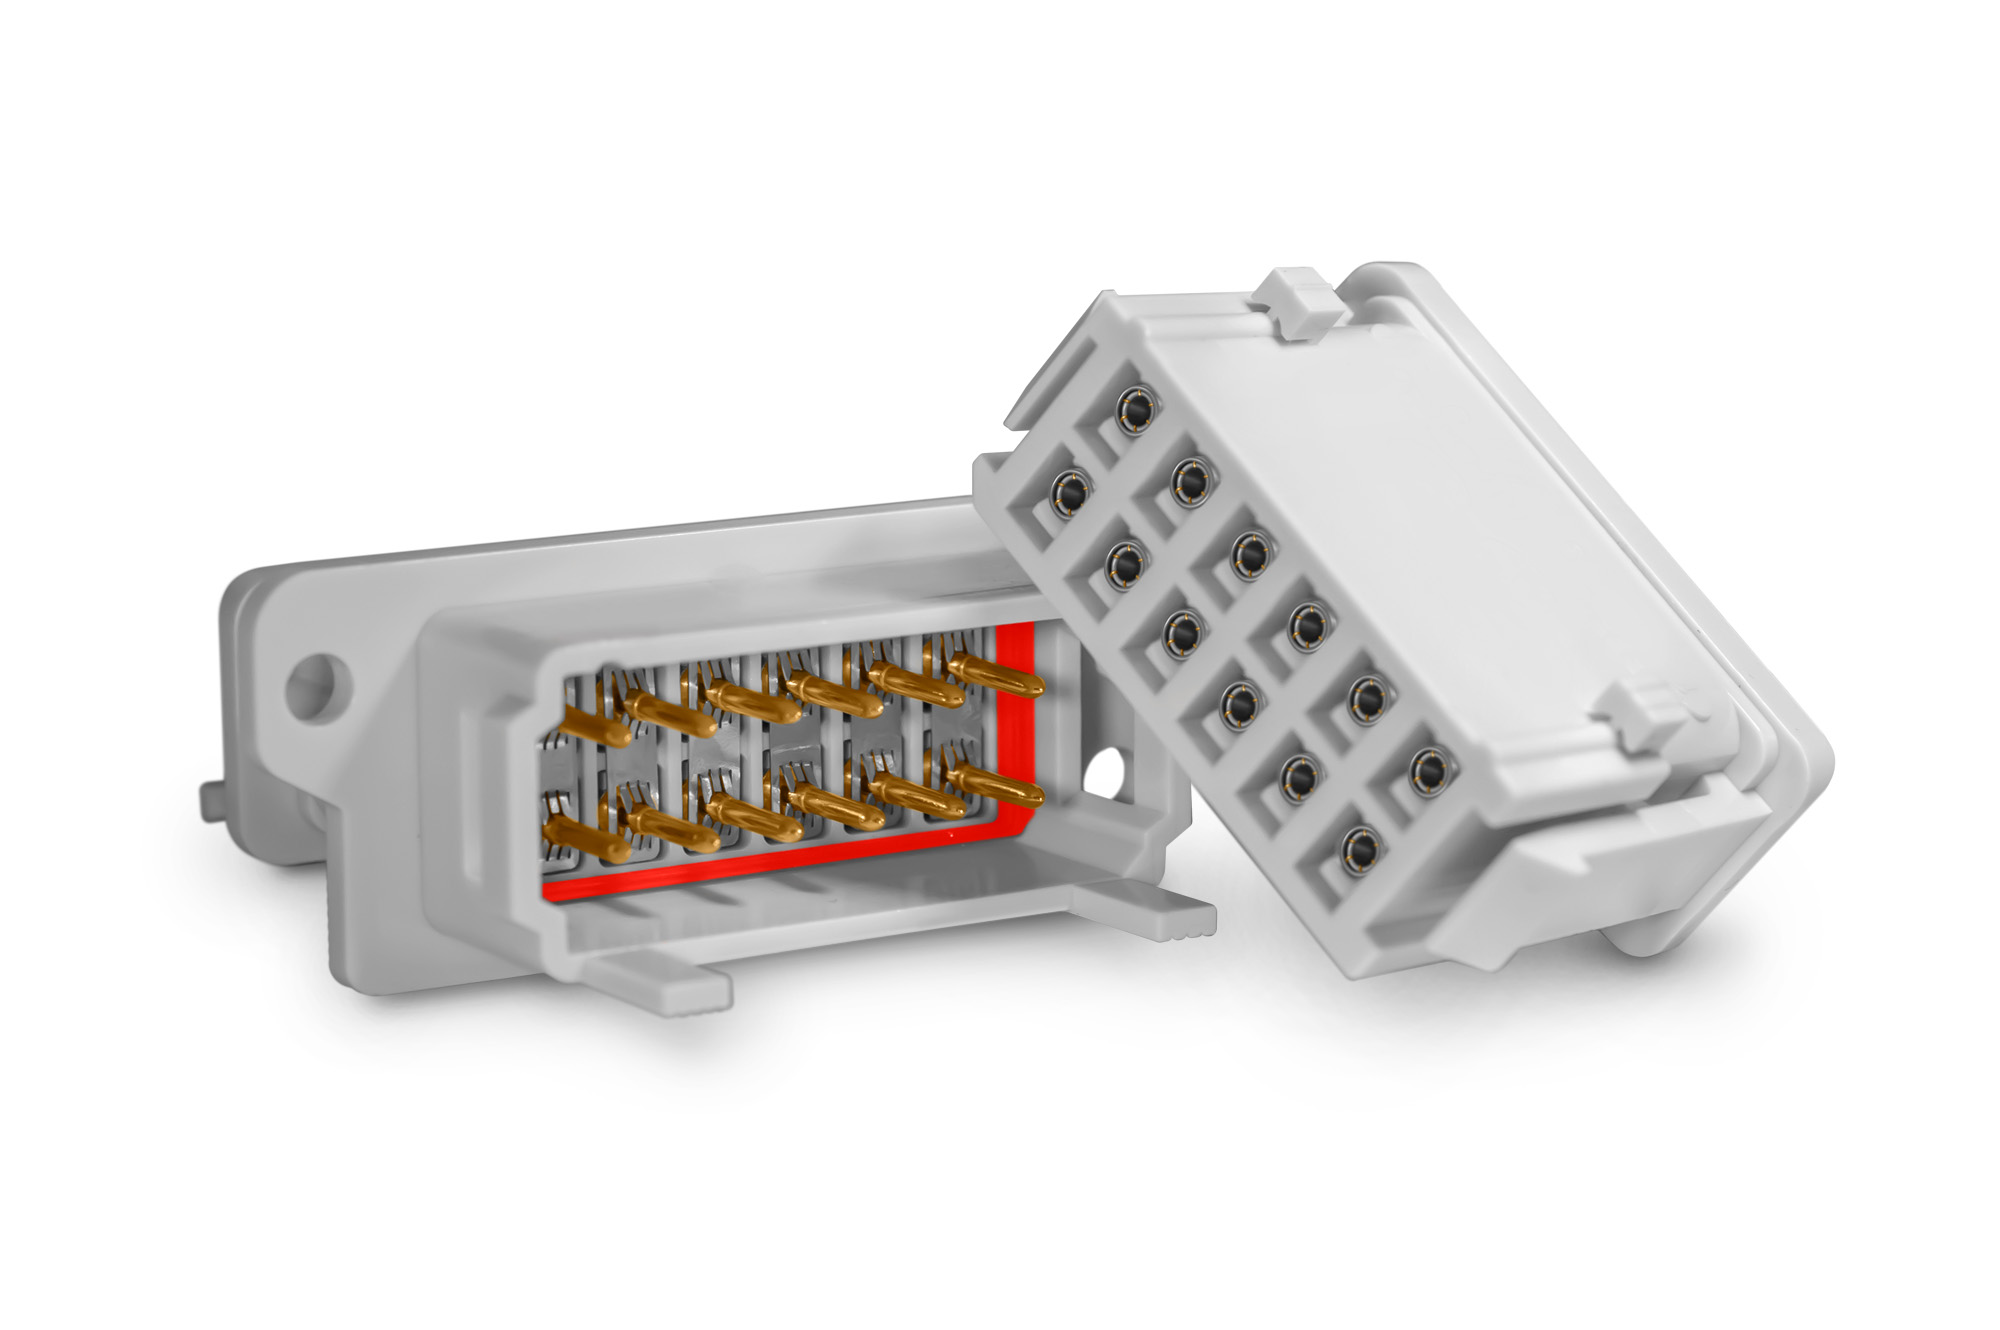 Smiths Interconnect REP Series connectors